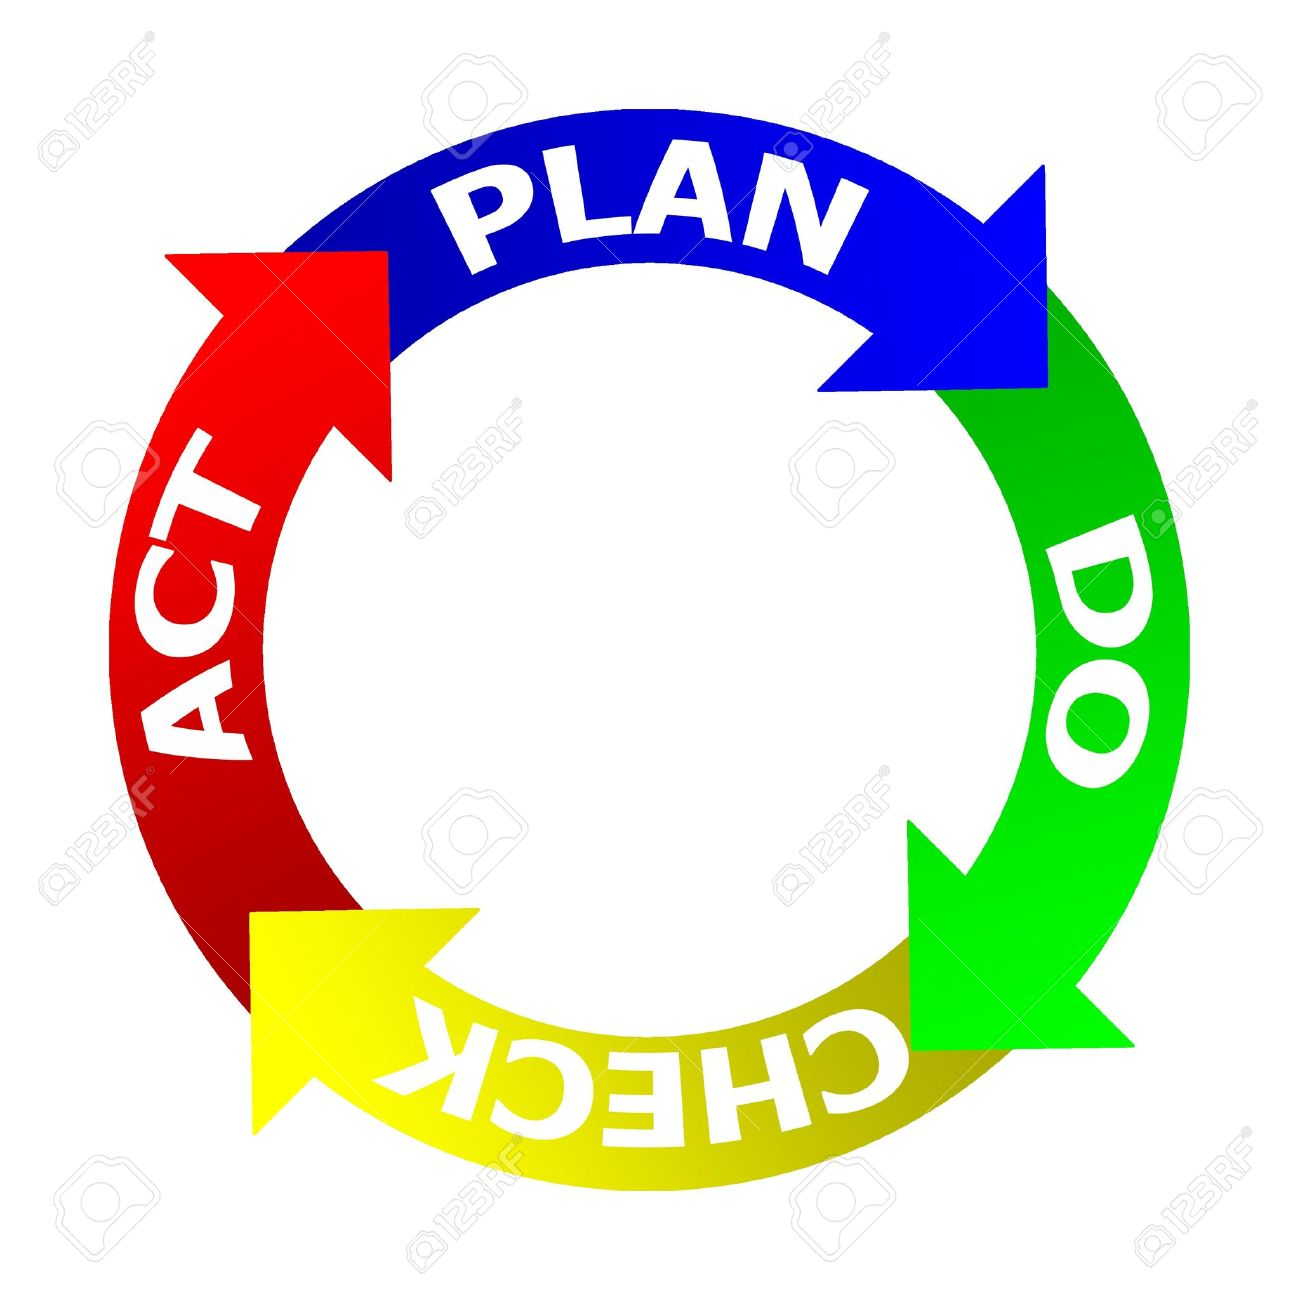 plan do check act images  amp  stock pictures  royalty free plan    plan do check act  pdca  plan do check act  on a white background